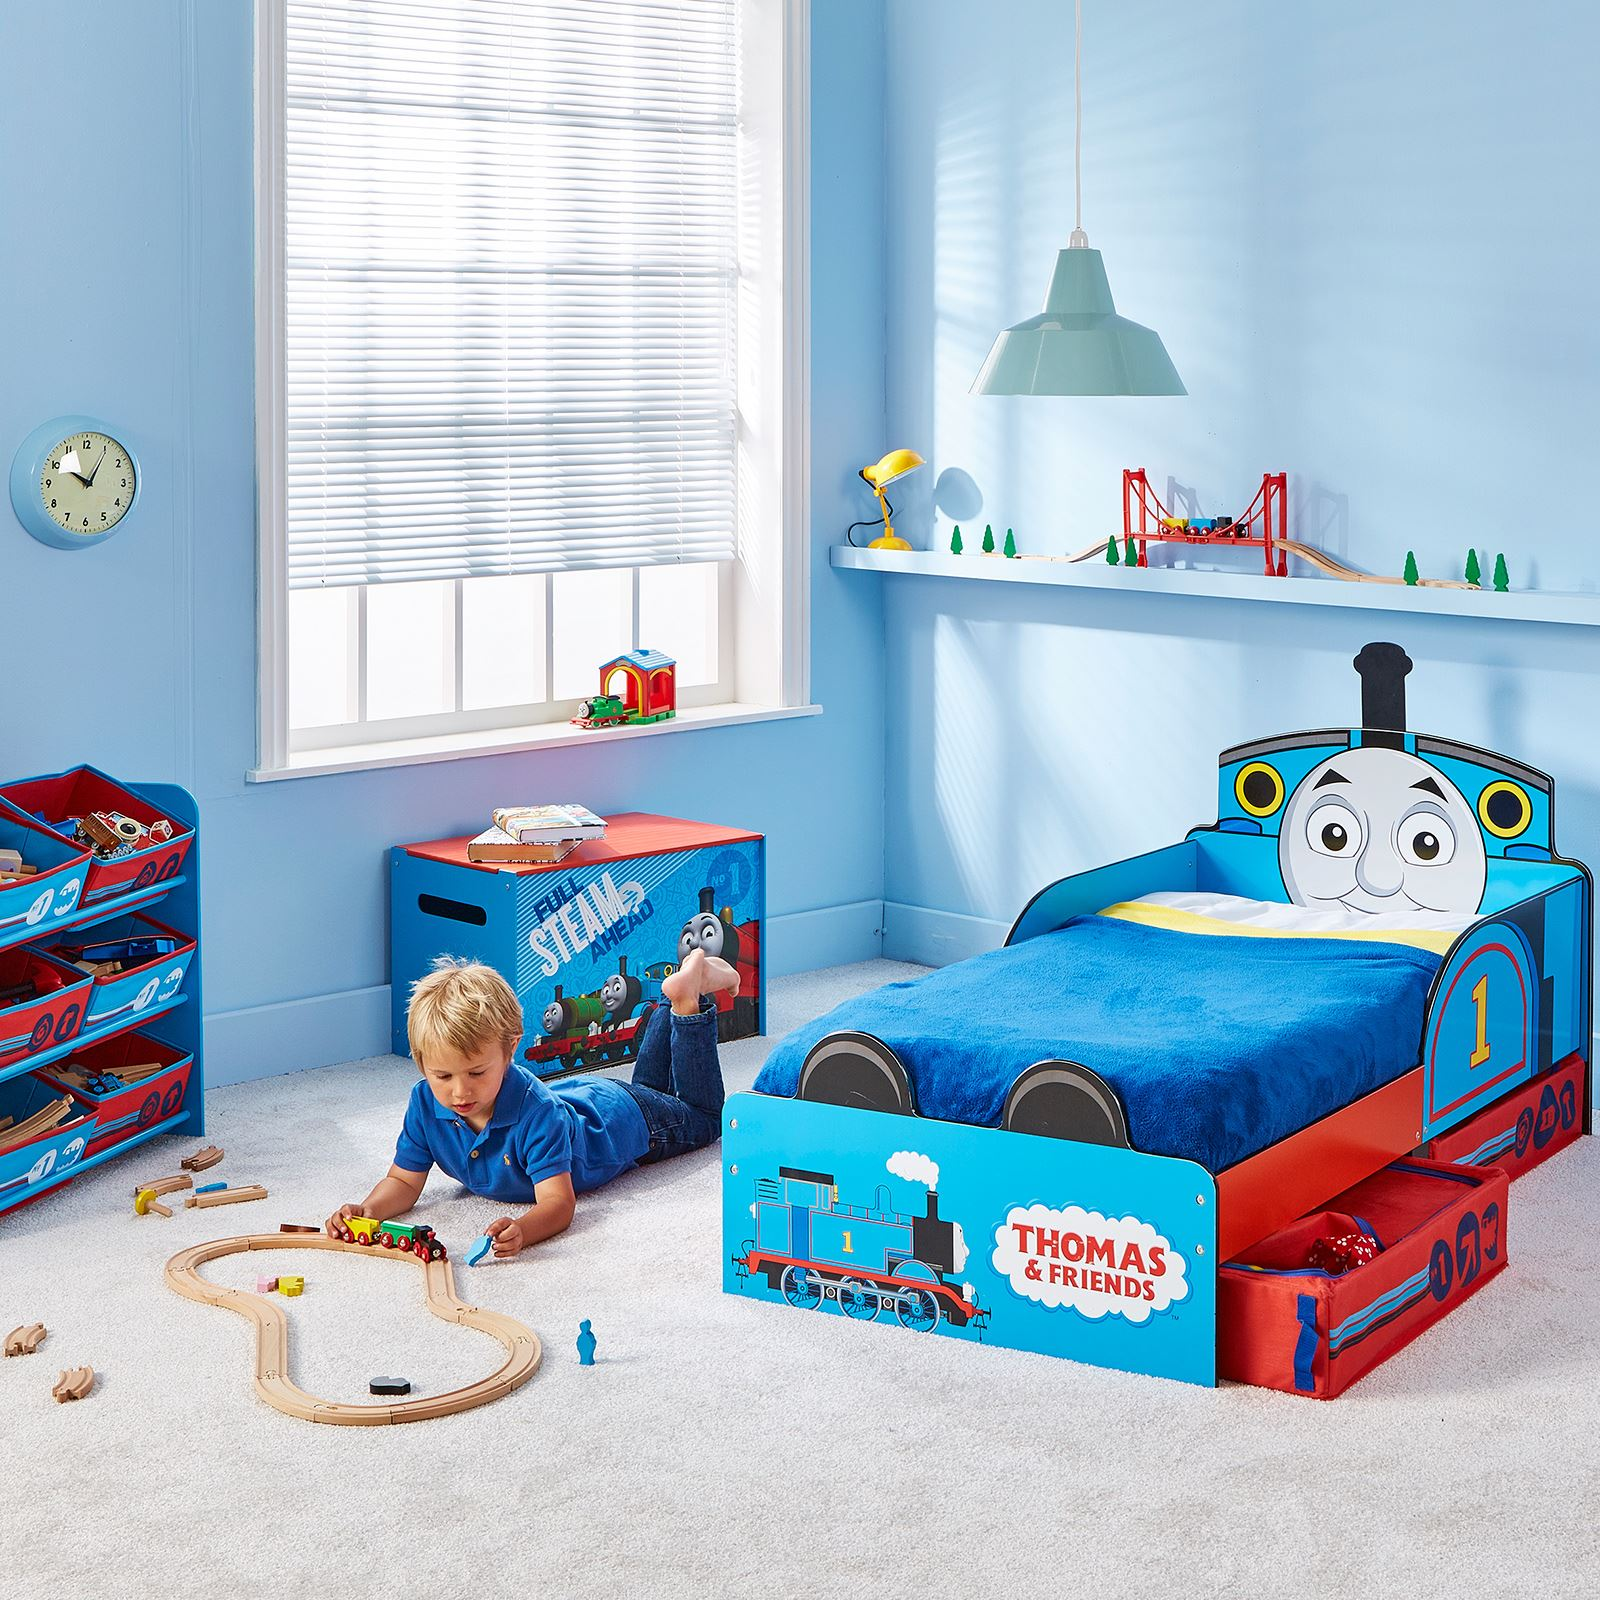 Thomas And Friends Furniture #26: THOMAS U0026amp; FRIENDS MDF TODDLER BED WITH STORAGE NEW TANK ENGINE BOYS